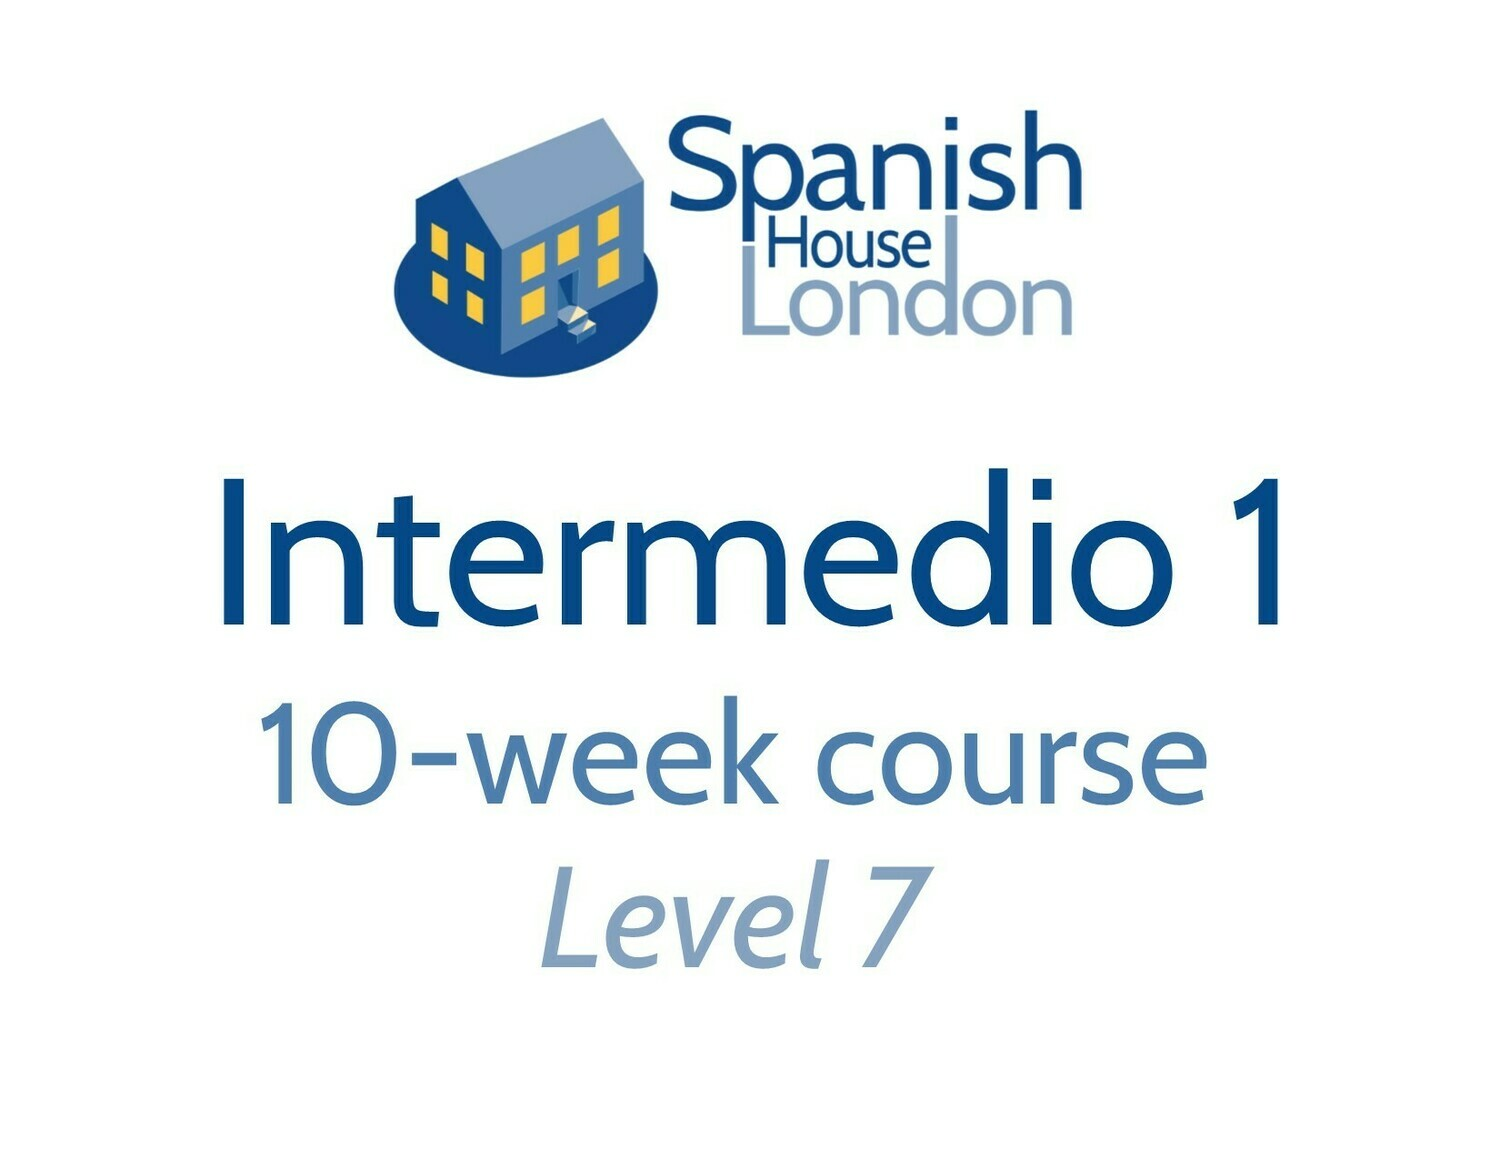 Intermedio 1 Course starting on 10th February at 6pm